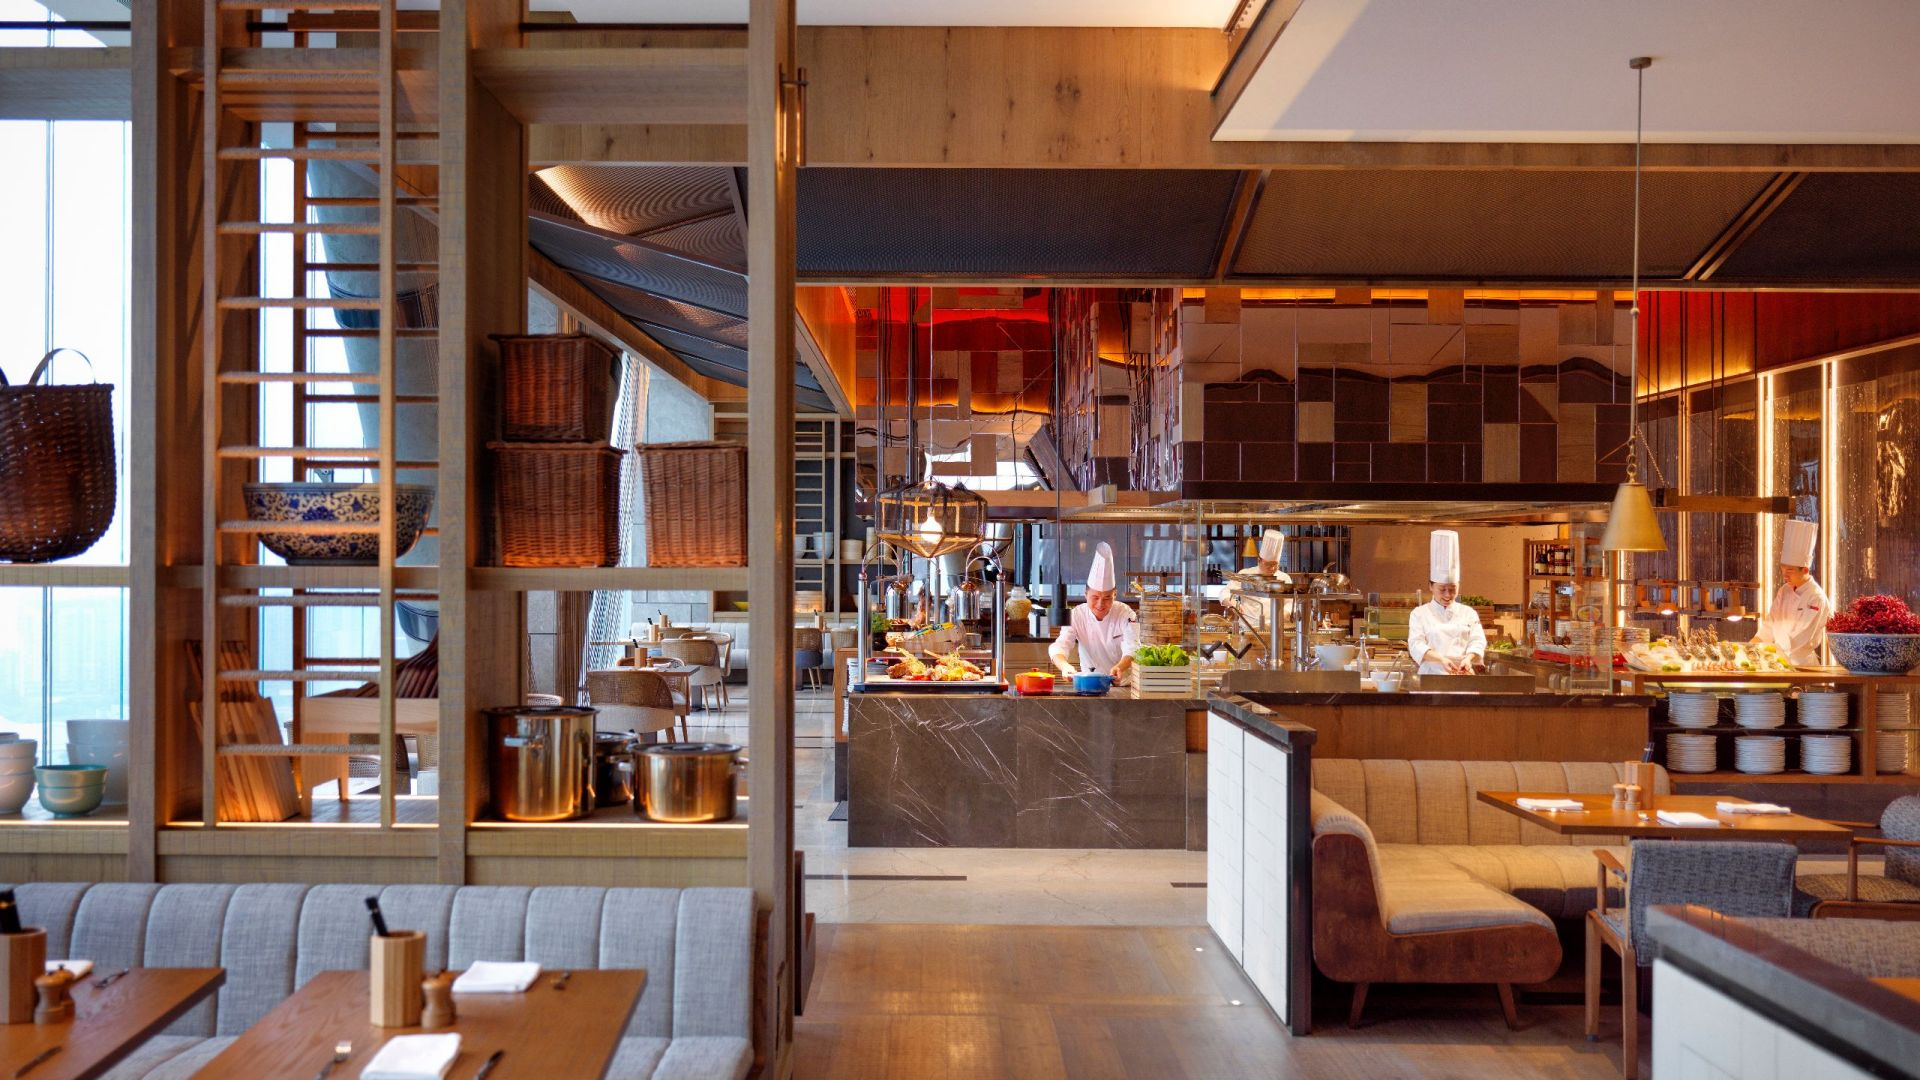 Grand Cafe Open Kitchen